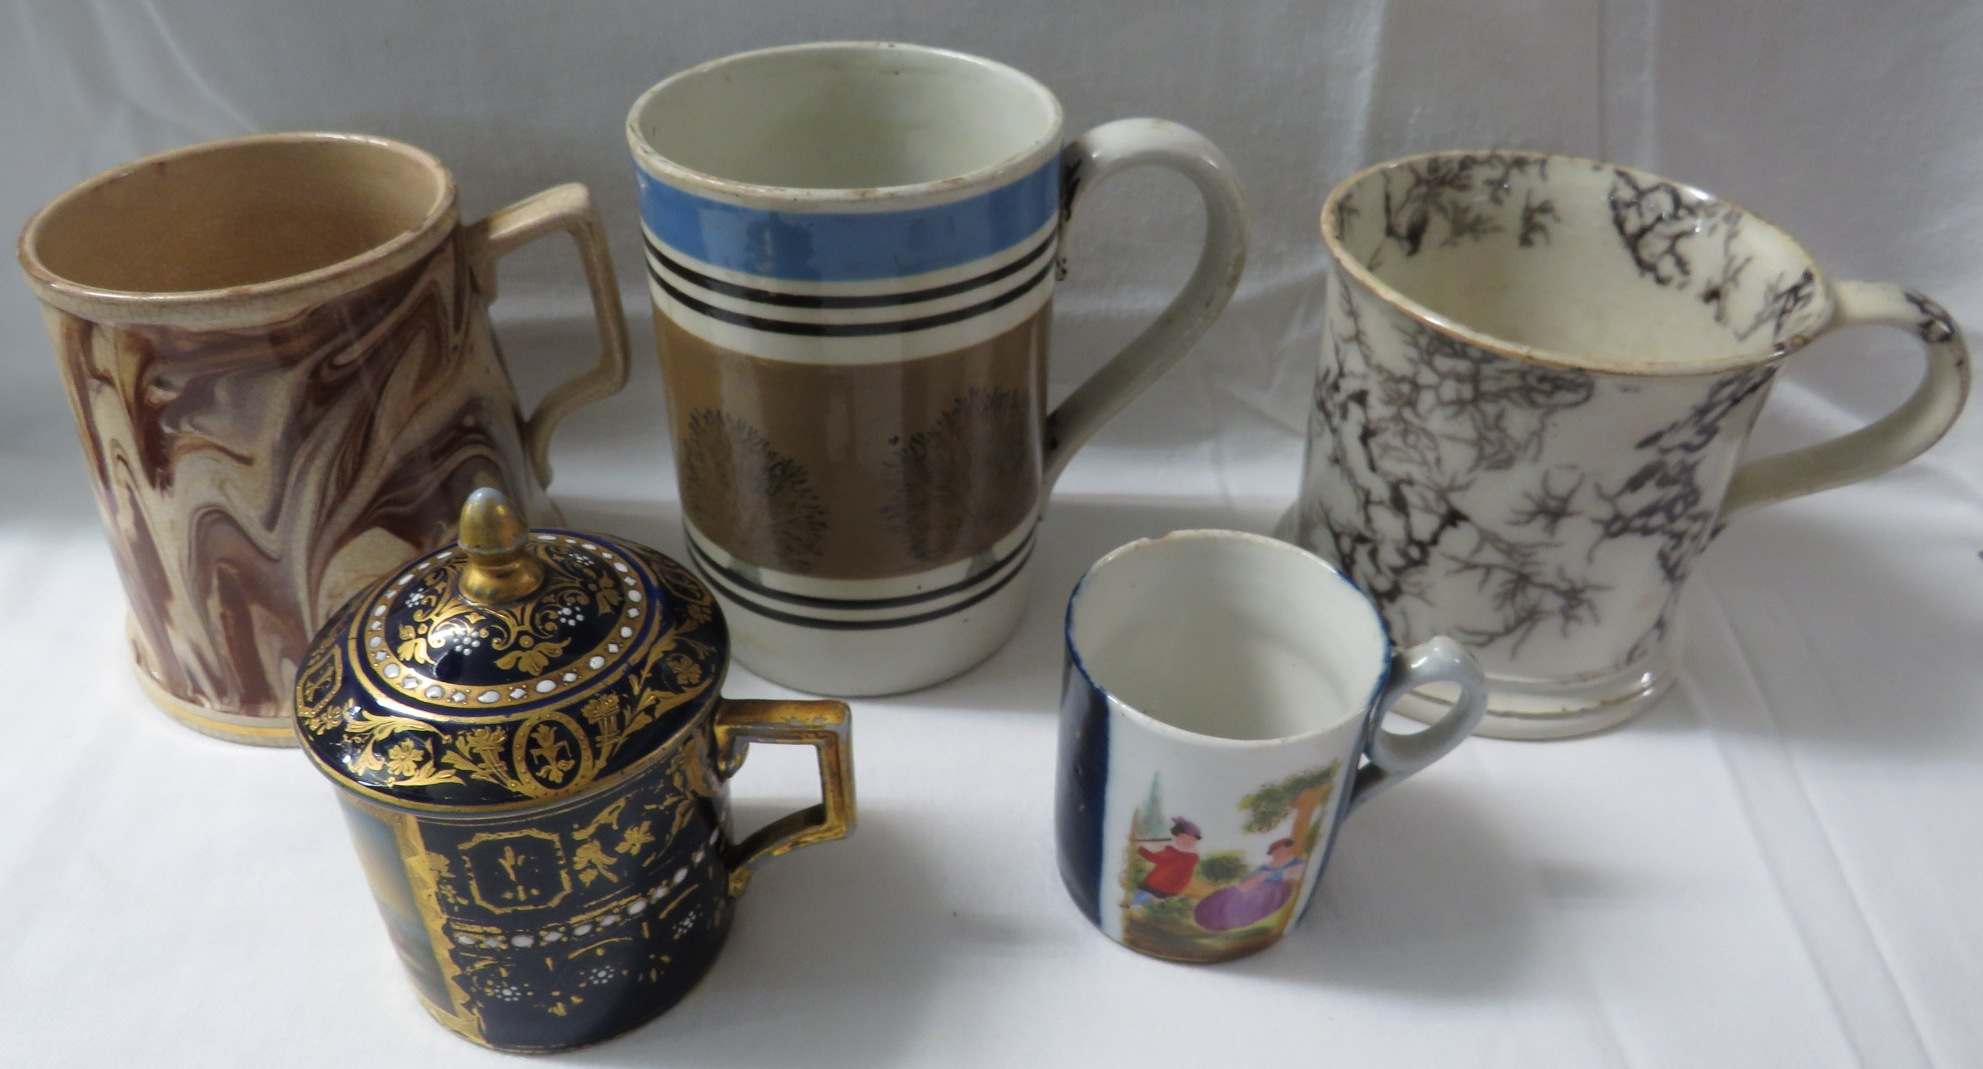 Lot 41 - A Mocha Ware tankard (height 12.5cm), two other pottery tankards, a damaged Augustus Rex coffee